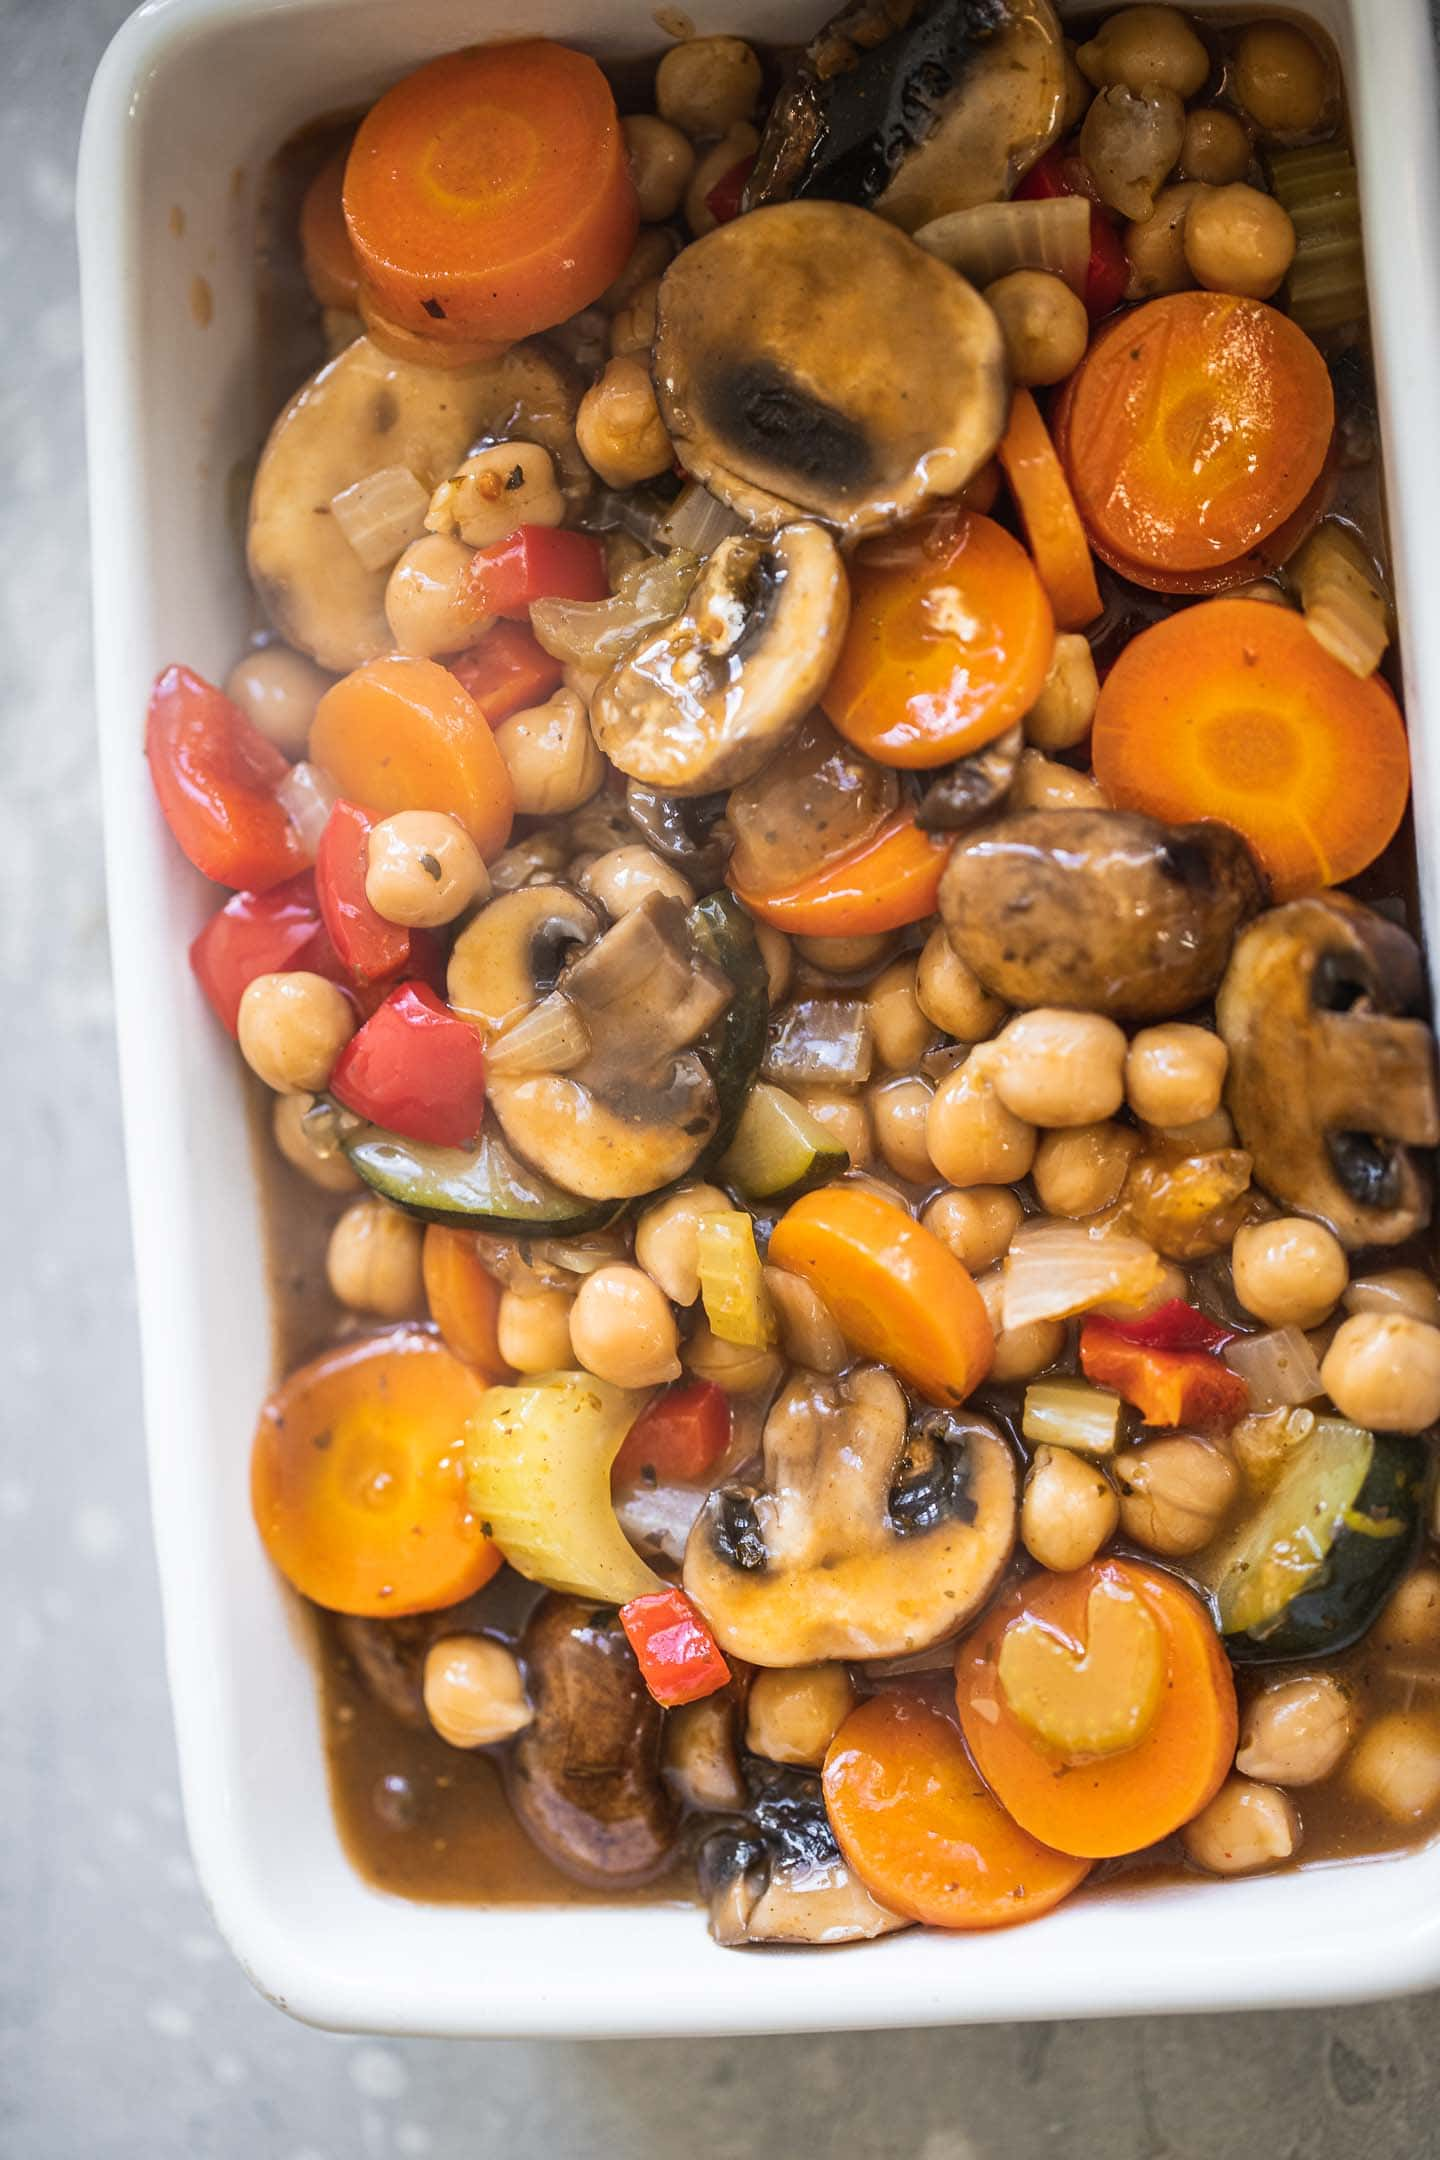 Vegetables and chickpeas in a baking dish